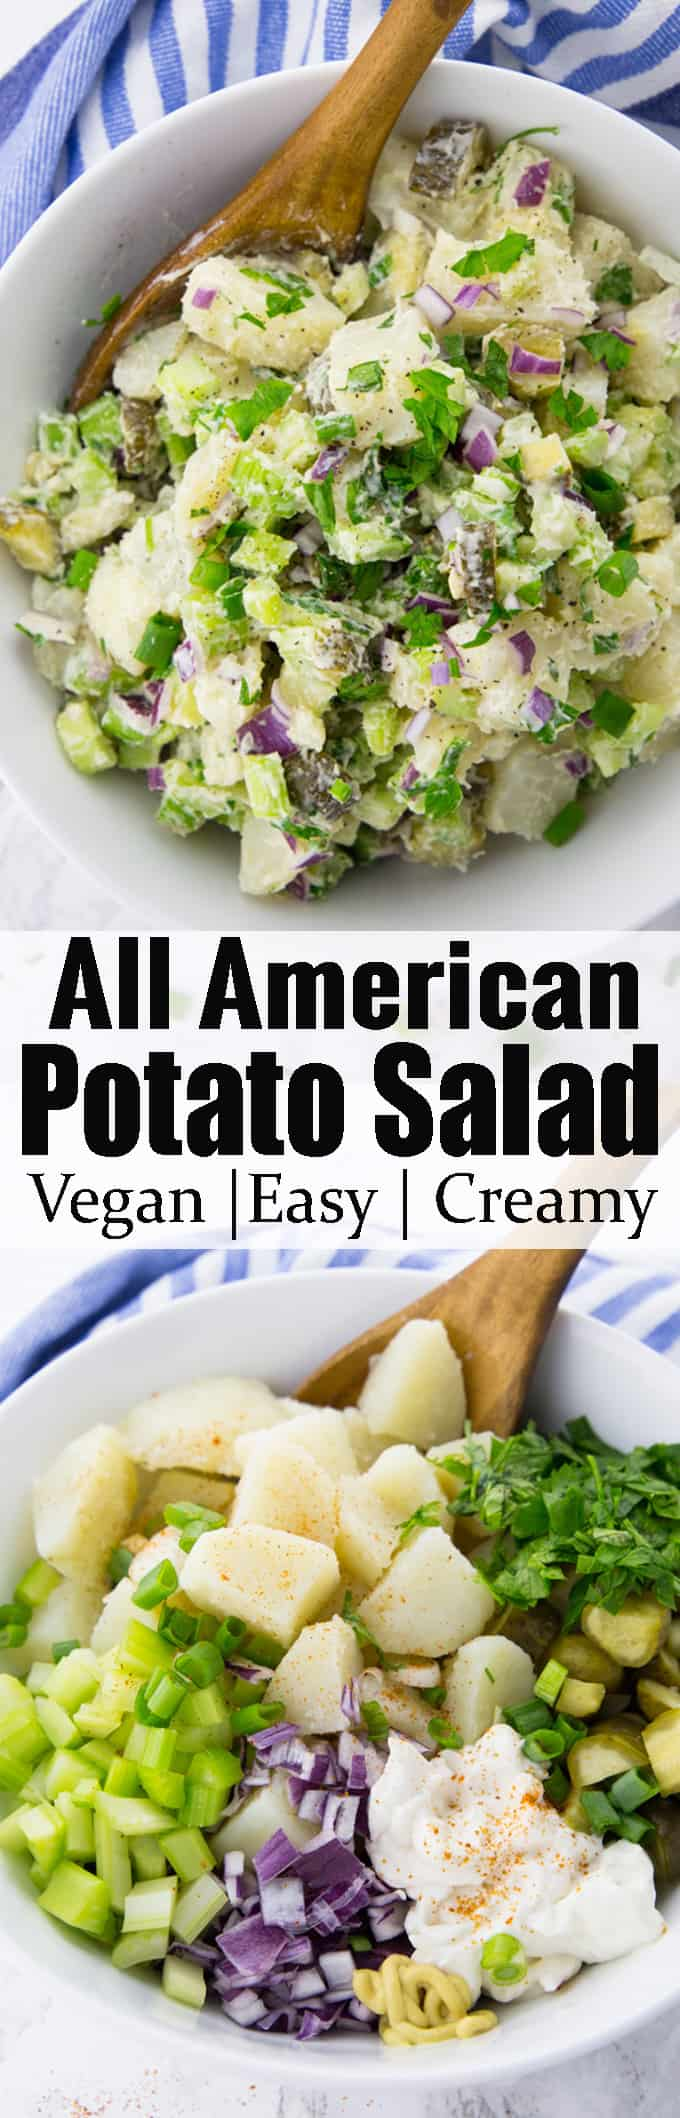 This vegan potato salad with pickles and celery is perfect for summer BBQs and picnics. It's a vegan version of classic American potato salad that will have everyone coming back for more! If you're looking for grilling sides, this potato salad is perfect! #vegan #potatosalad #veganrecipes #grillingsides #BBQ